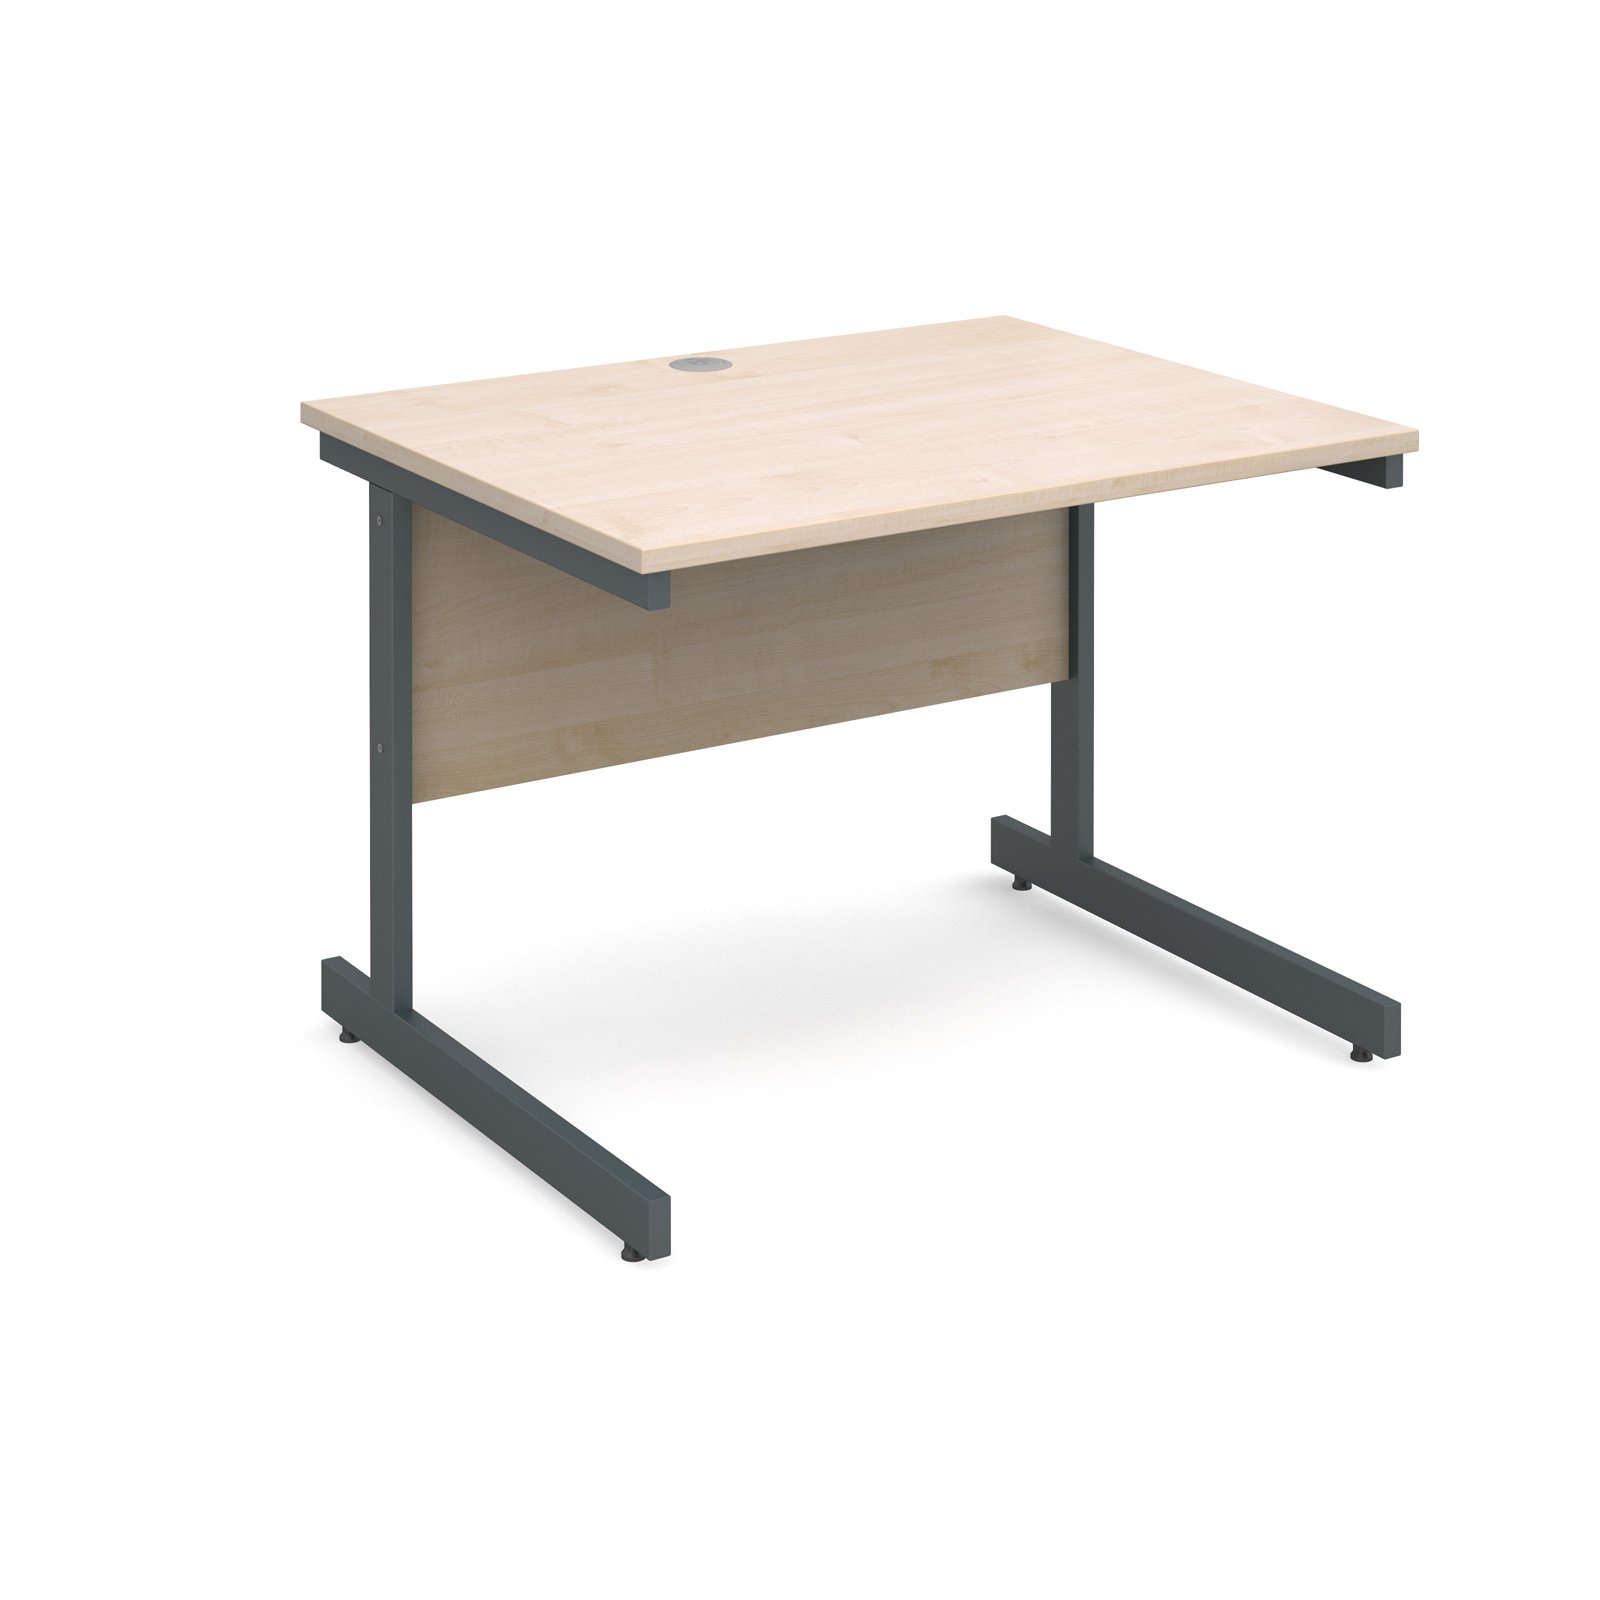 Contract 25 straight desk 1000mm x 800mm - graphite cantilever frame, maple top